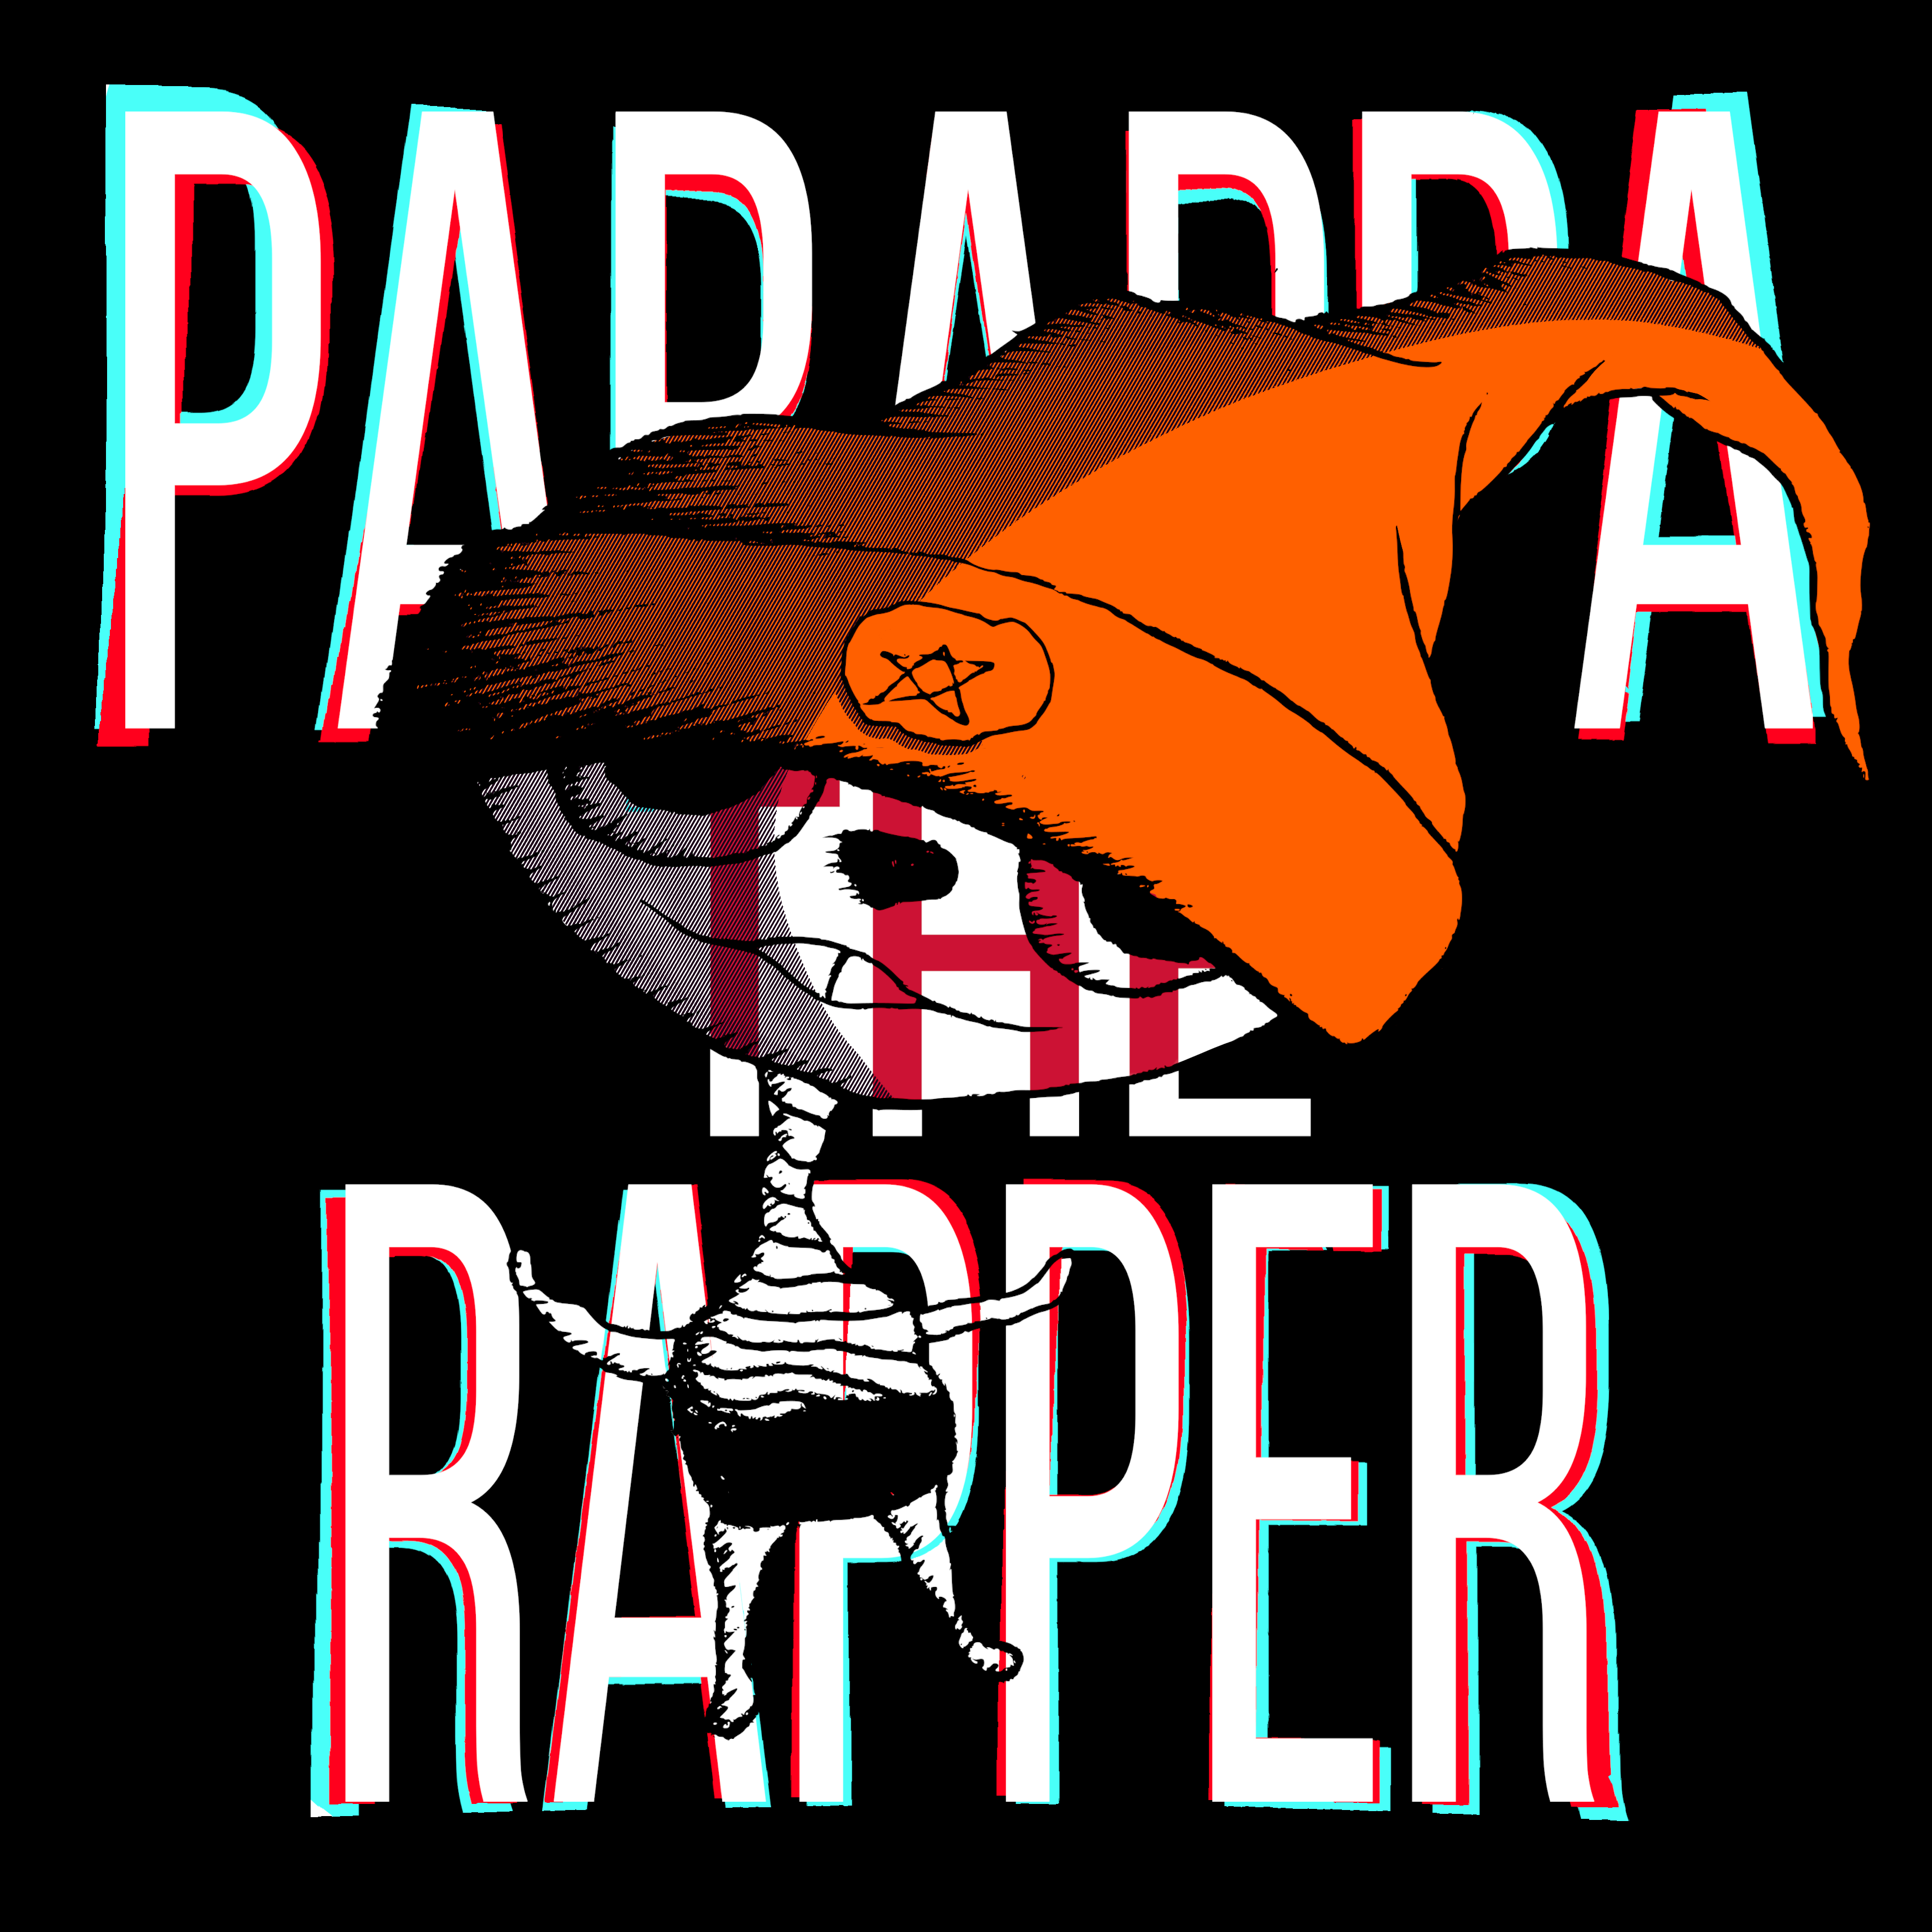 parappa coming for your whore